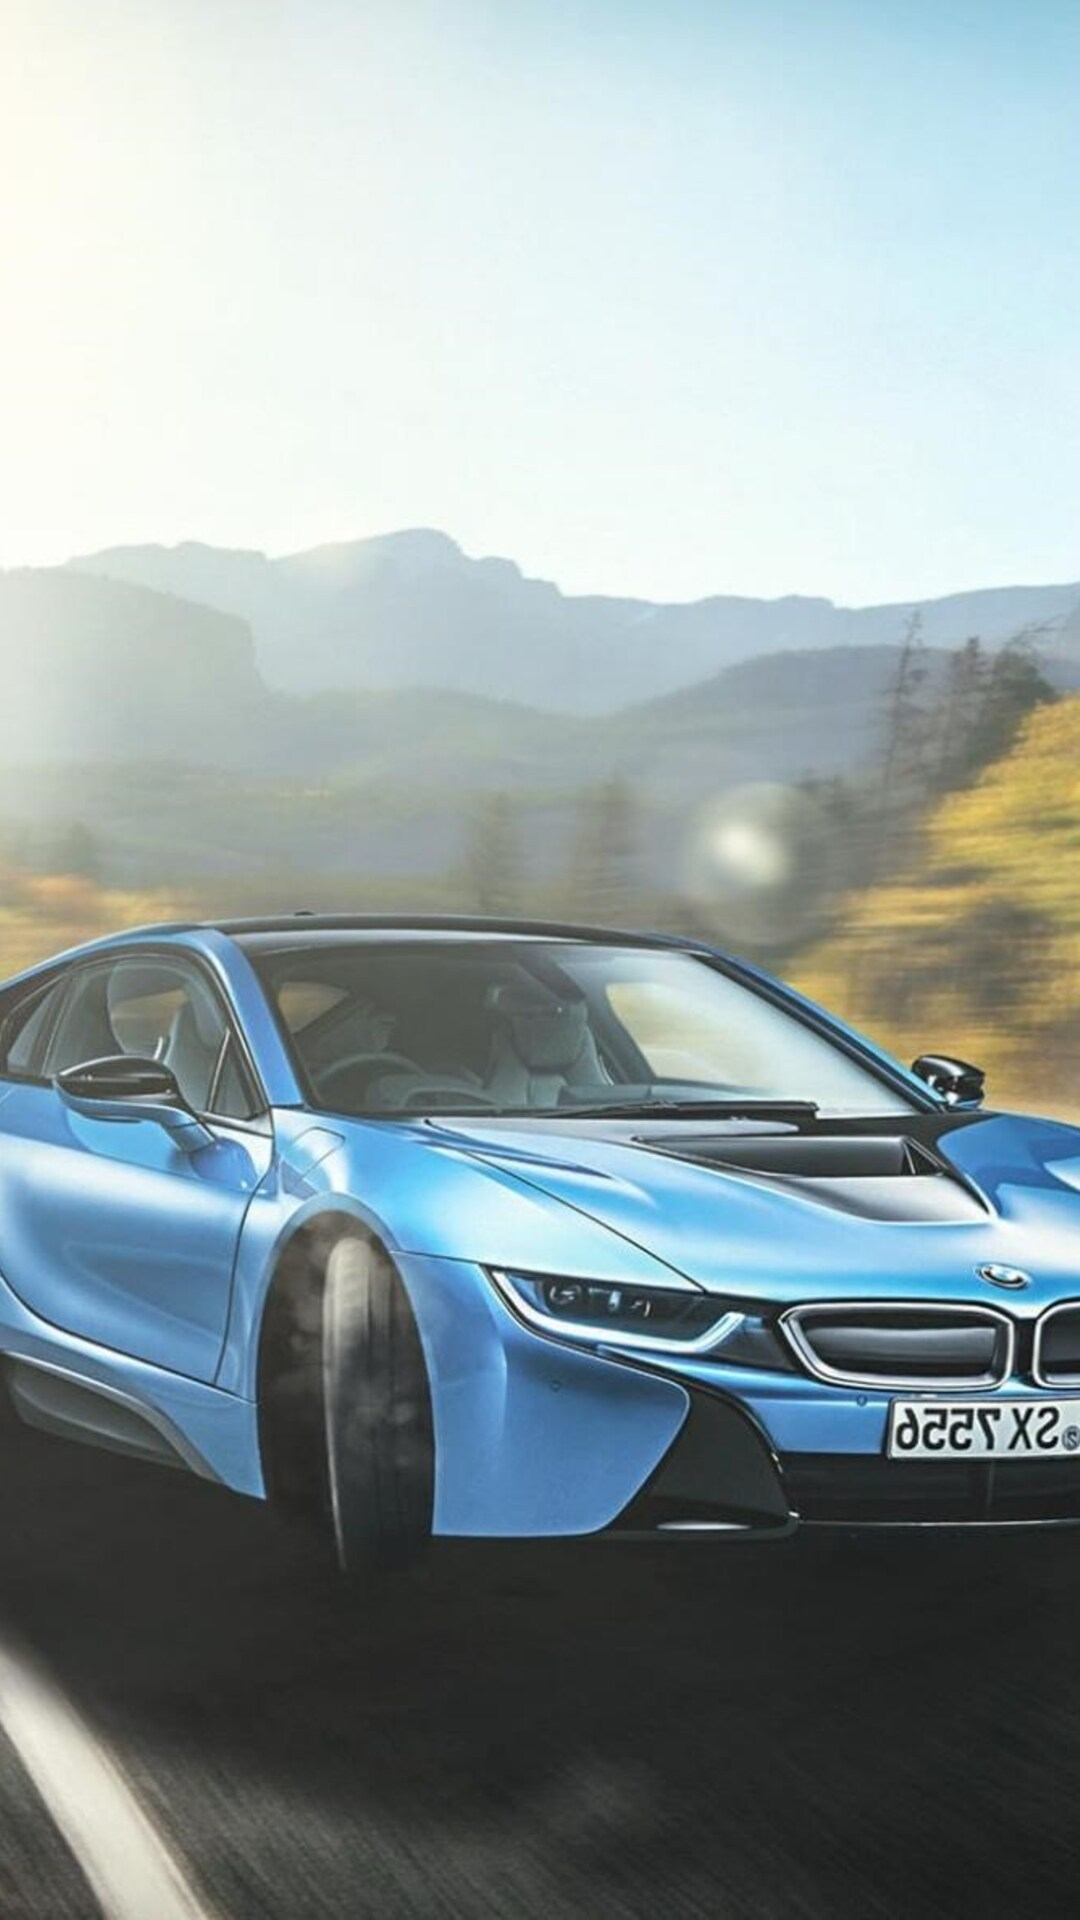 1080x1920 Bmw I8 Blue Iphone 7 6s 6 Plus Pixel Xl One Plus 3 3t 5